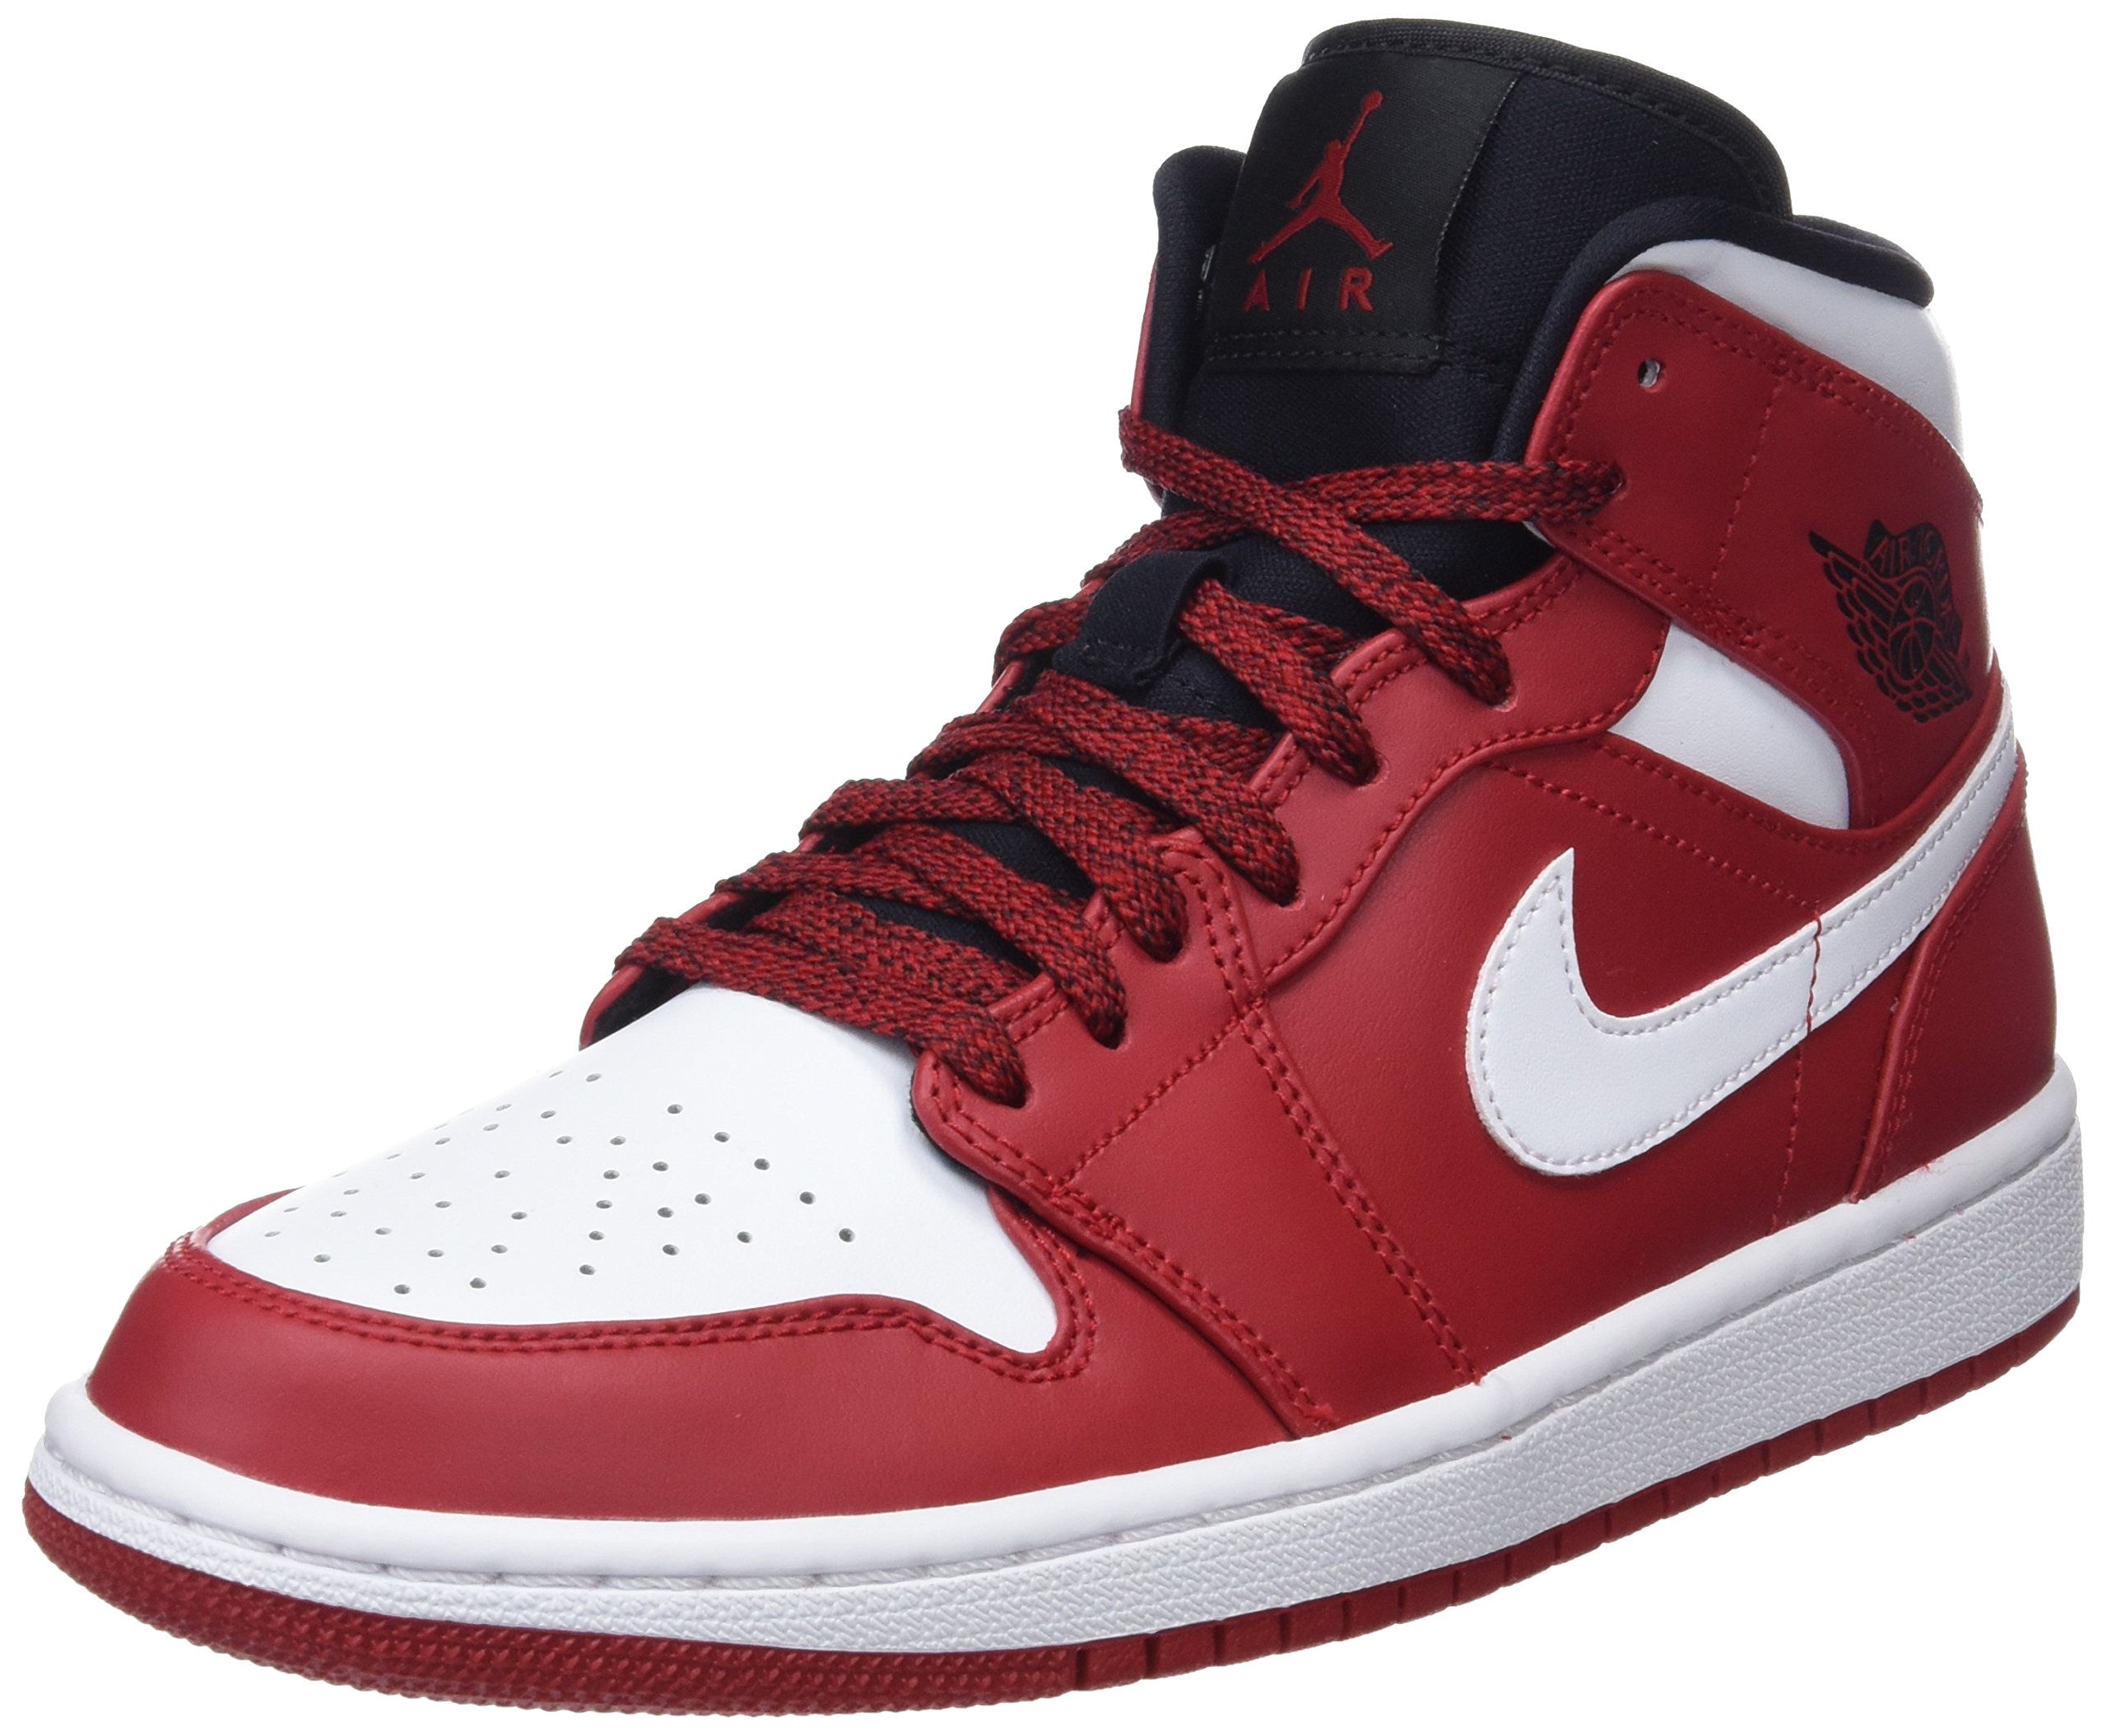 new york 7c162 934dd Galleon - Nike Men s Air Jordan 1 Mid Basketball Shoe (10.5)